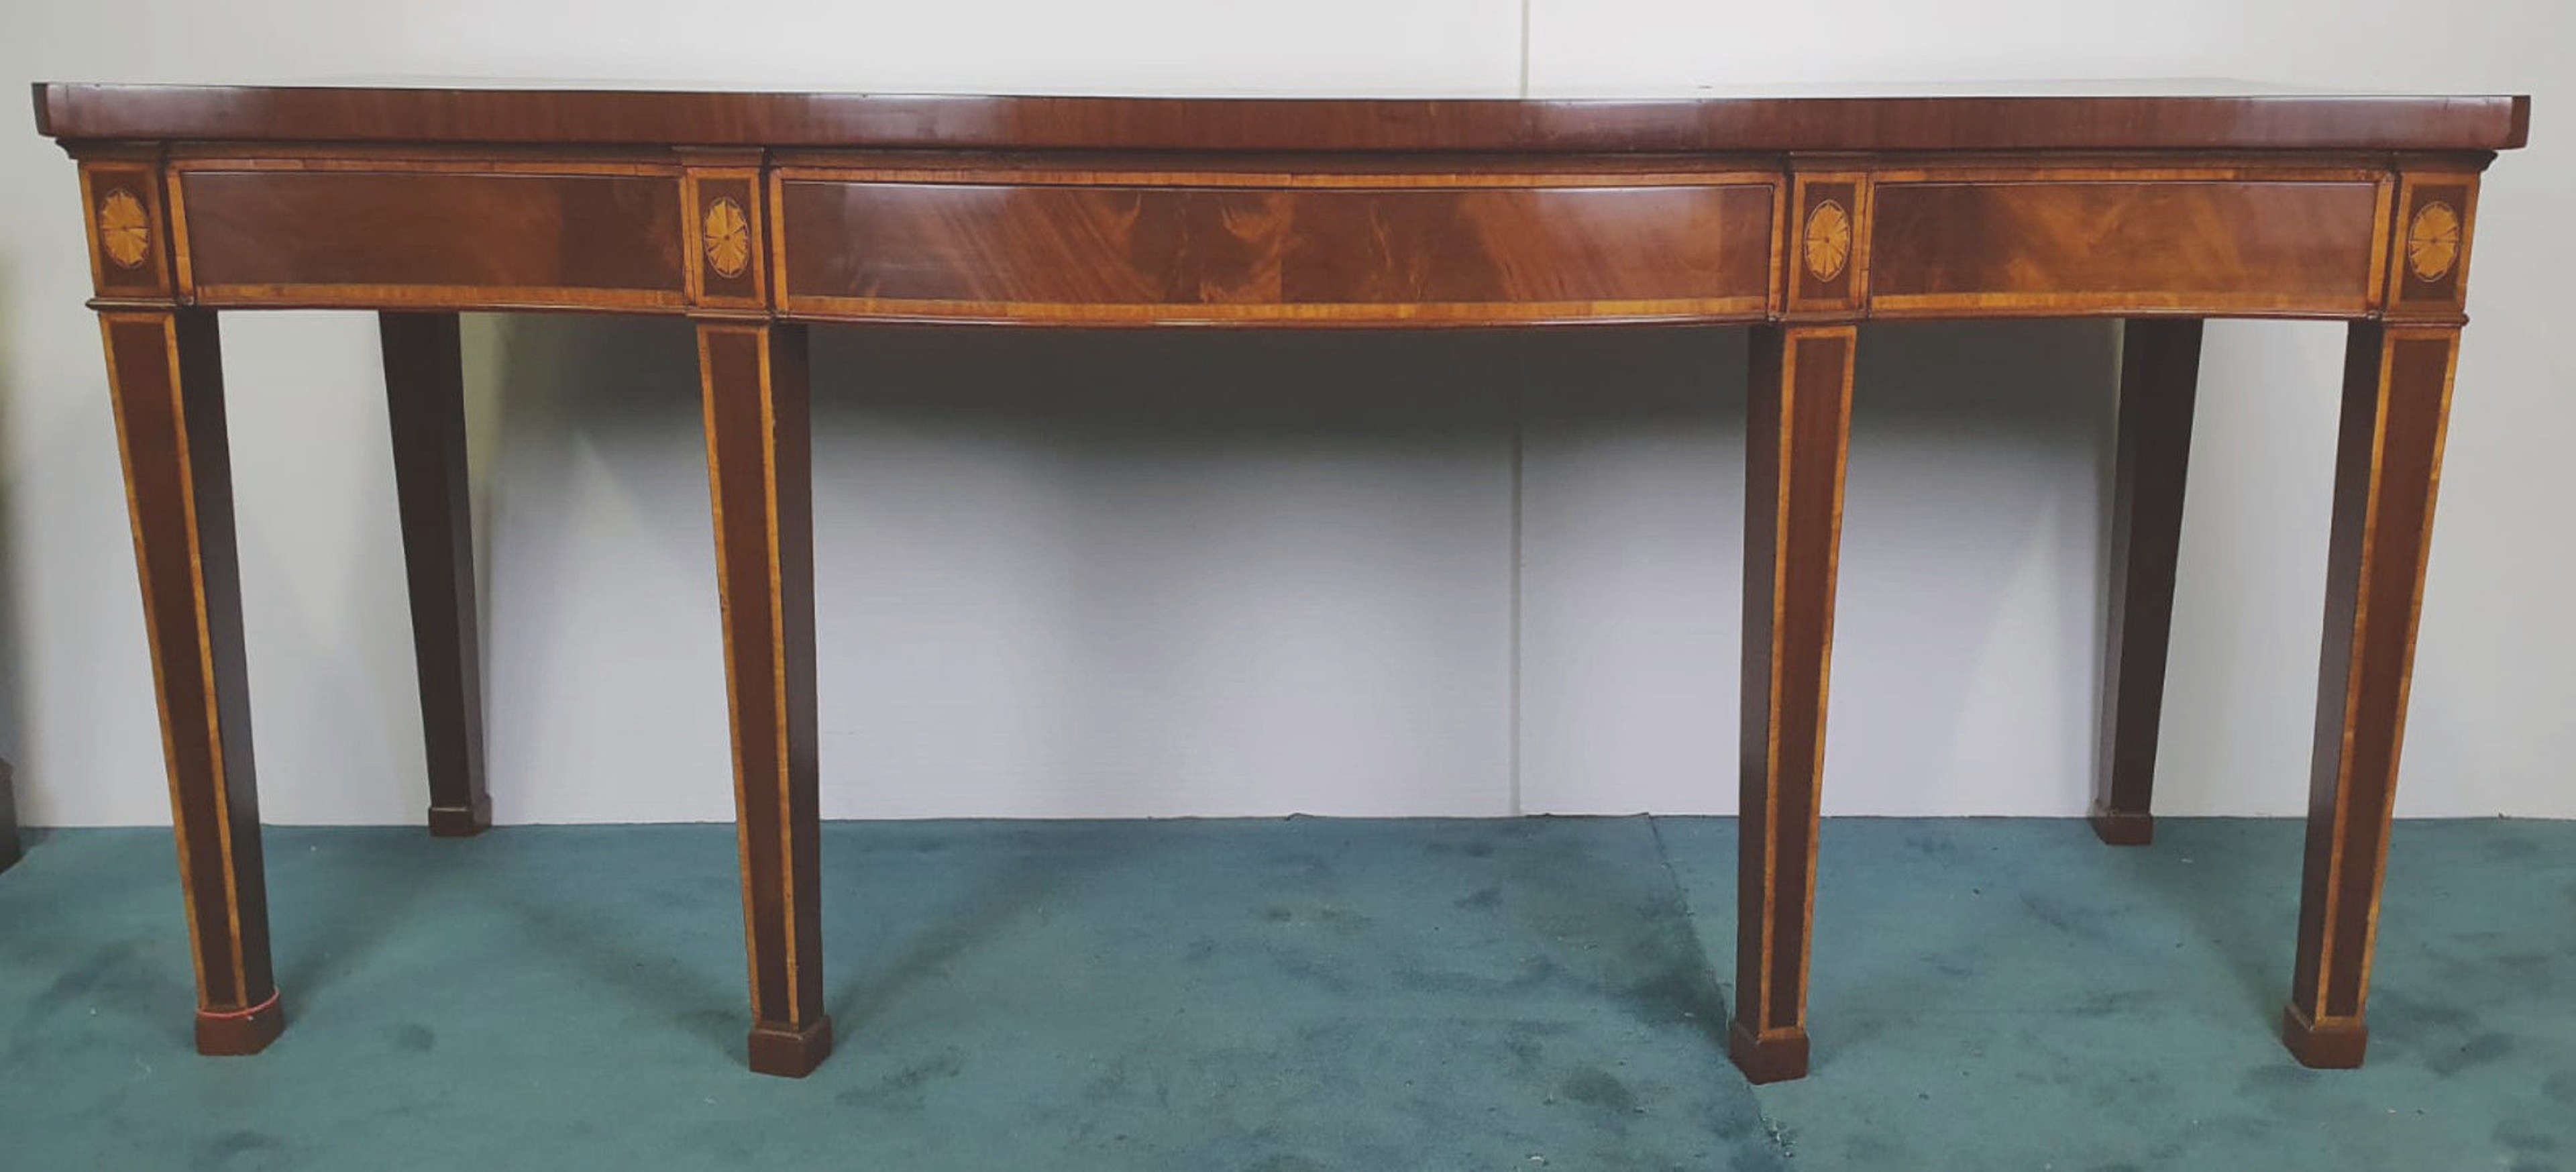 Georgian Inlaid Mahogany Side or Serving or Console Table